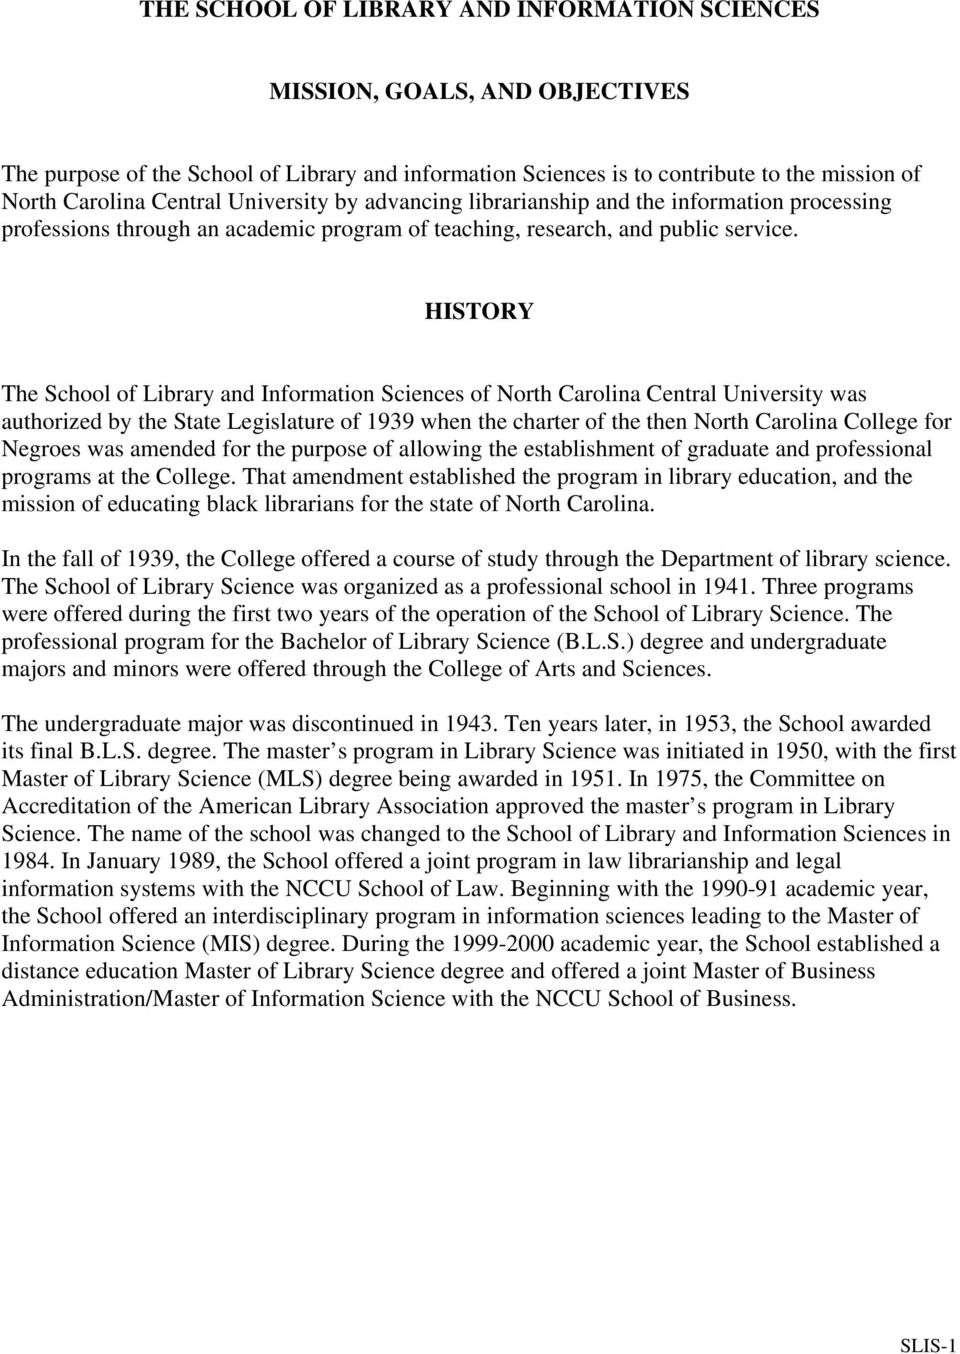 HISTORY The School of Library and Information Sciences of North Carolina Central University was authorized by the State Legislature of 1939 when the charter of the then North Carolina College for